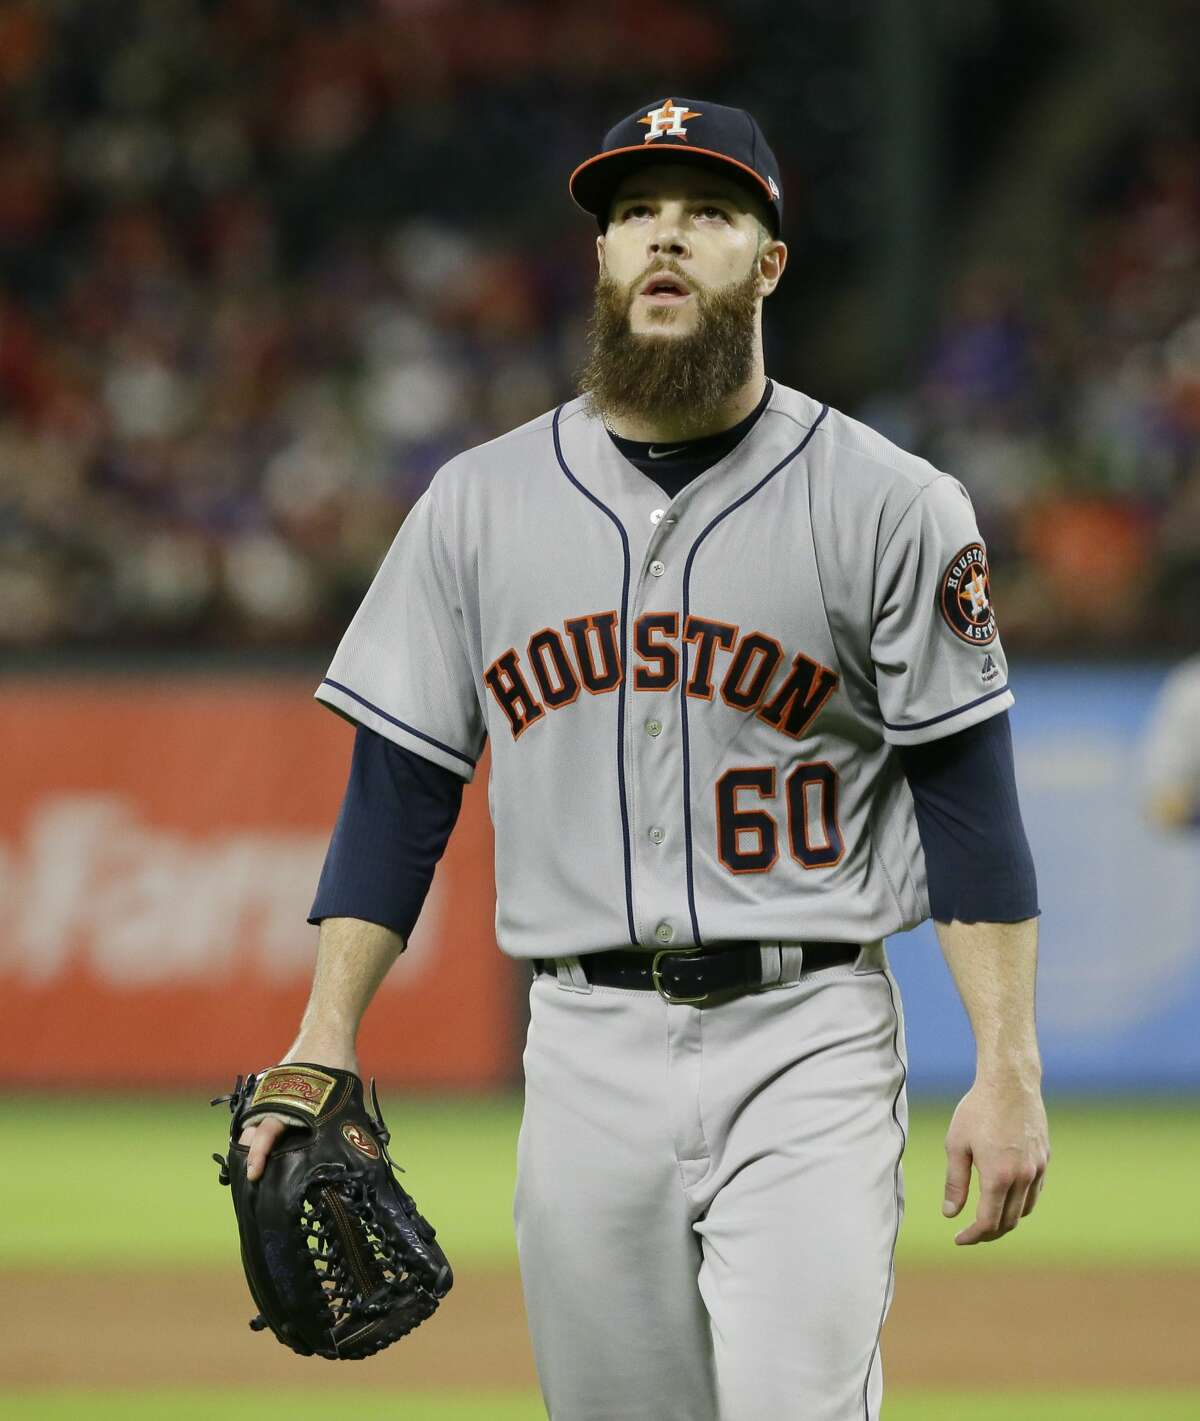 Houston Astros starting pitcher Dallas Keuchel walks off the field after the final out of the fourth inning of a baseball game against the Texas Rangers in Arlington,Texas, Friday, June 2, 2017. (AP Photo/LM Otero)